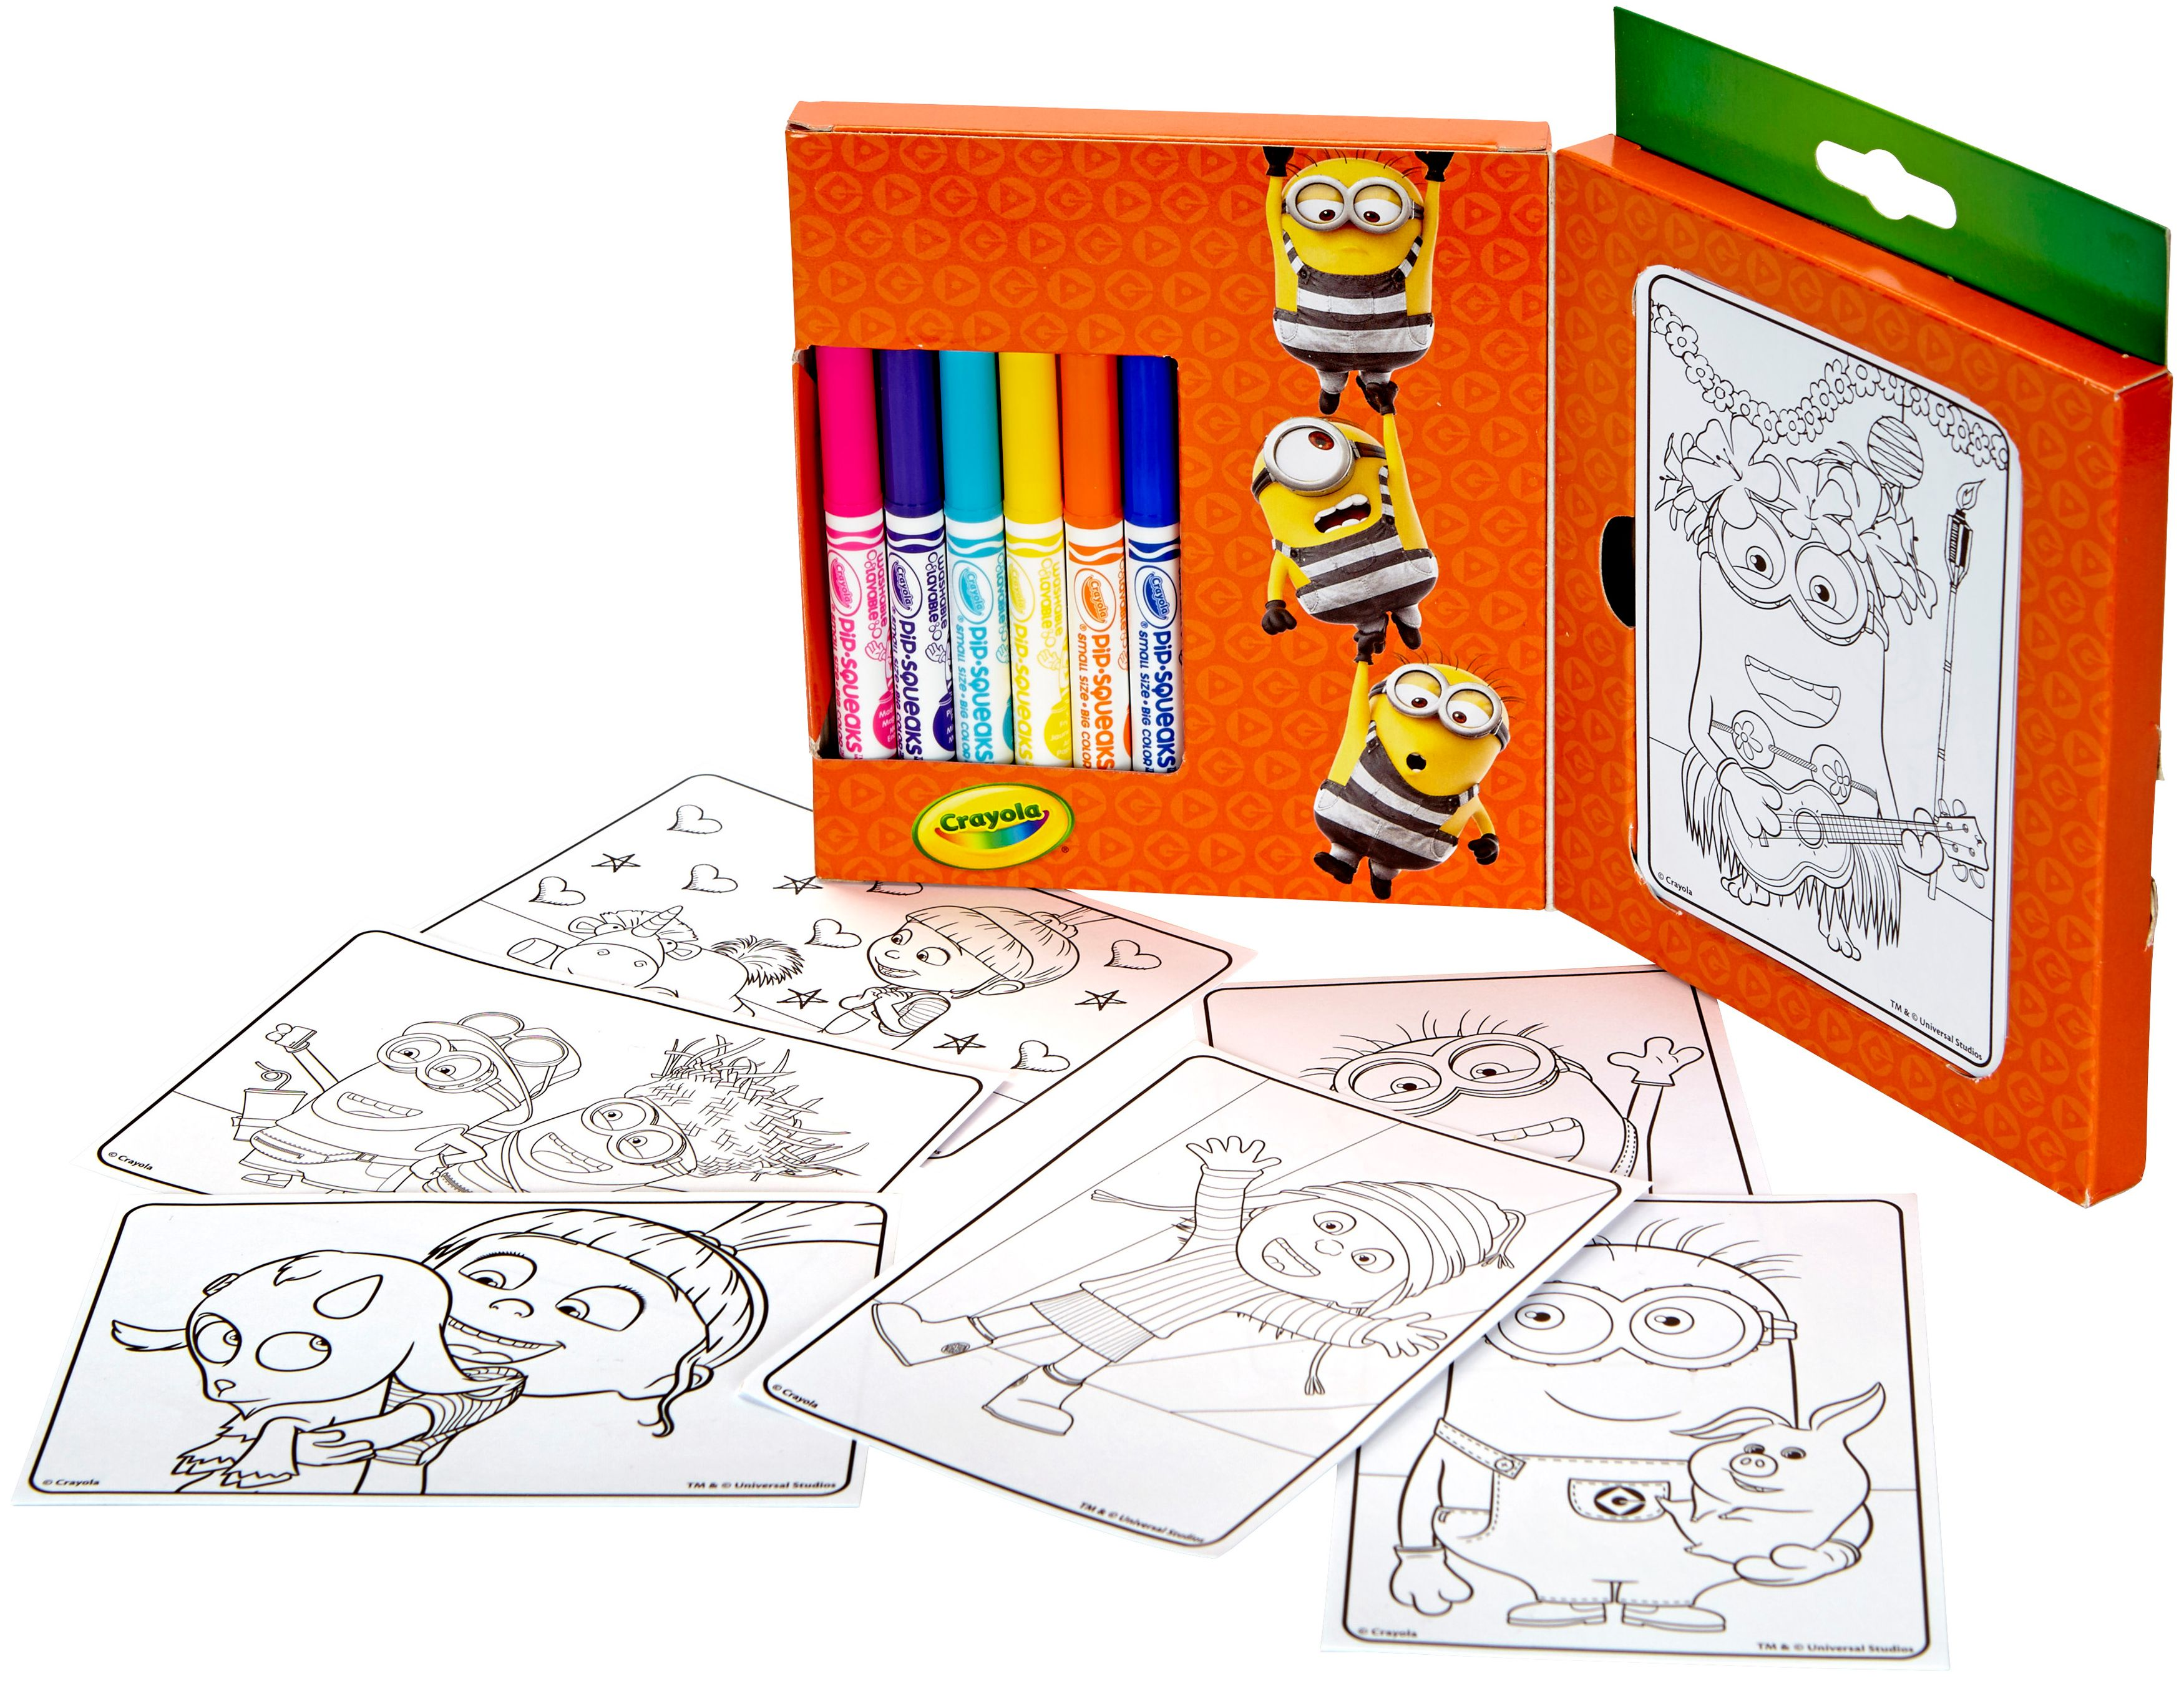 Crayola Mini Coloring Pages,Despicable Me 3 - Walmart.com - Walmart.com